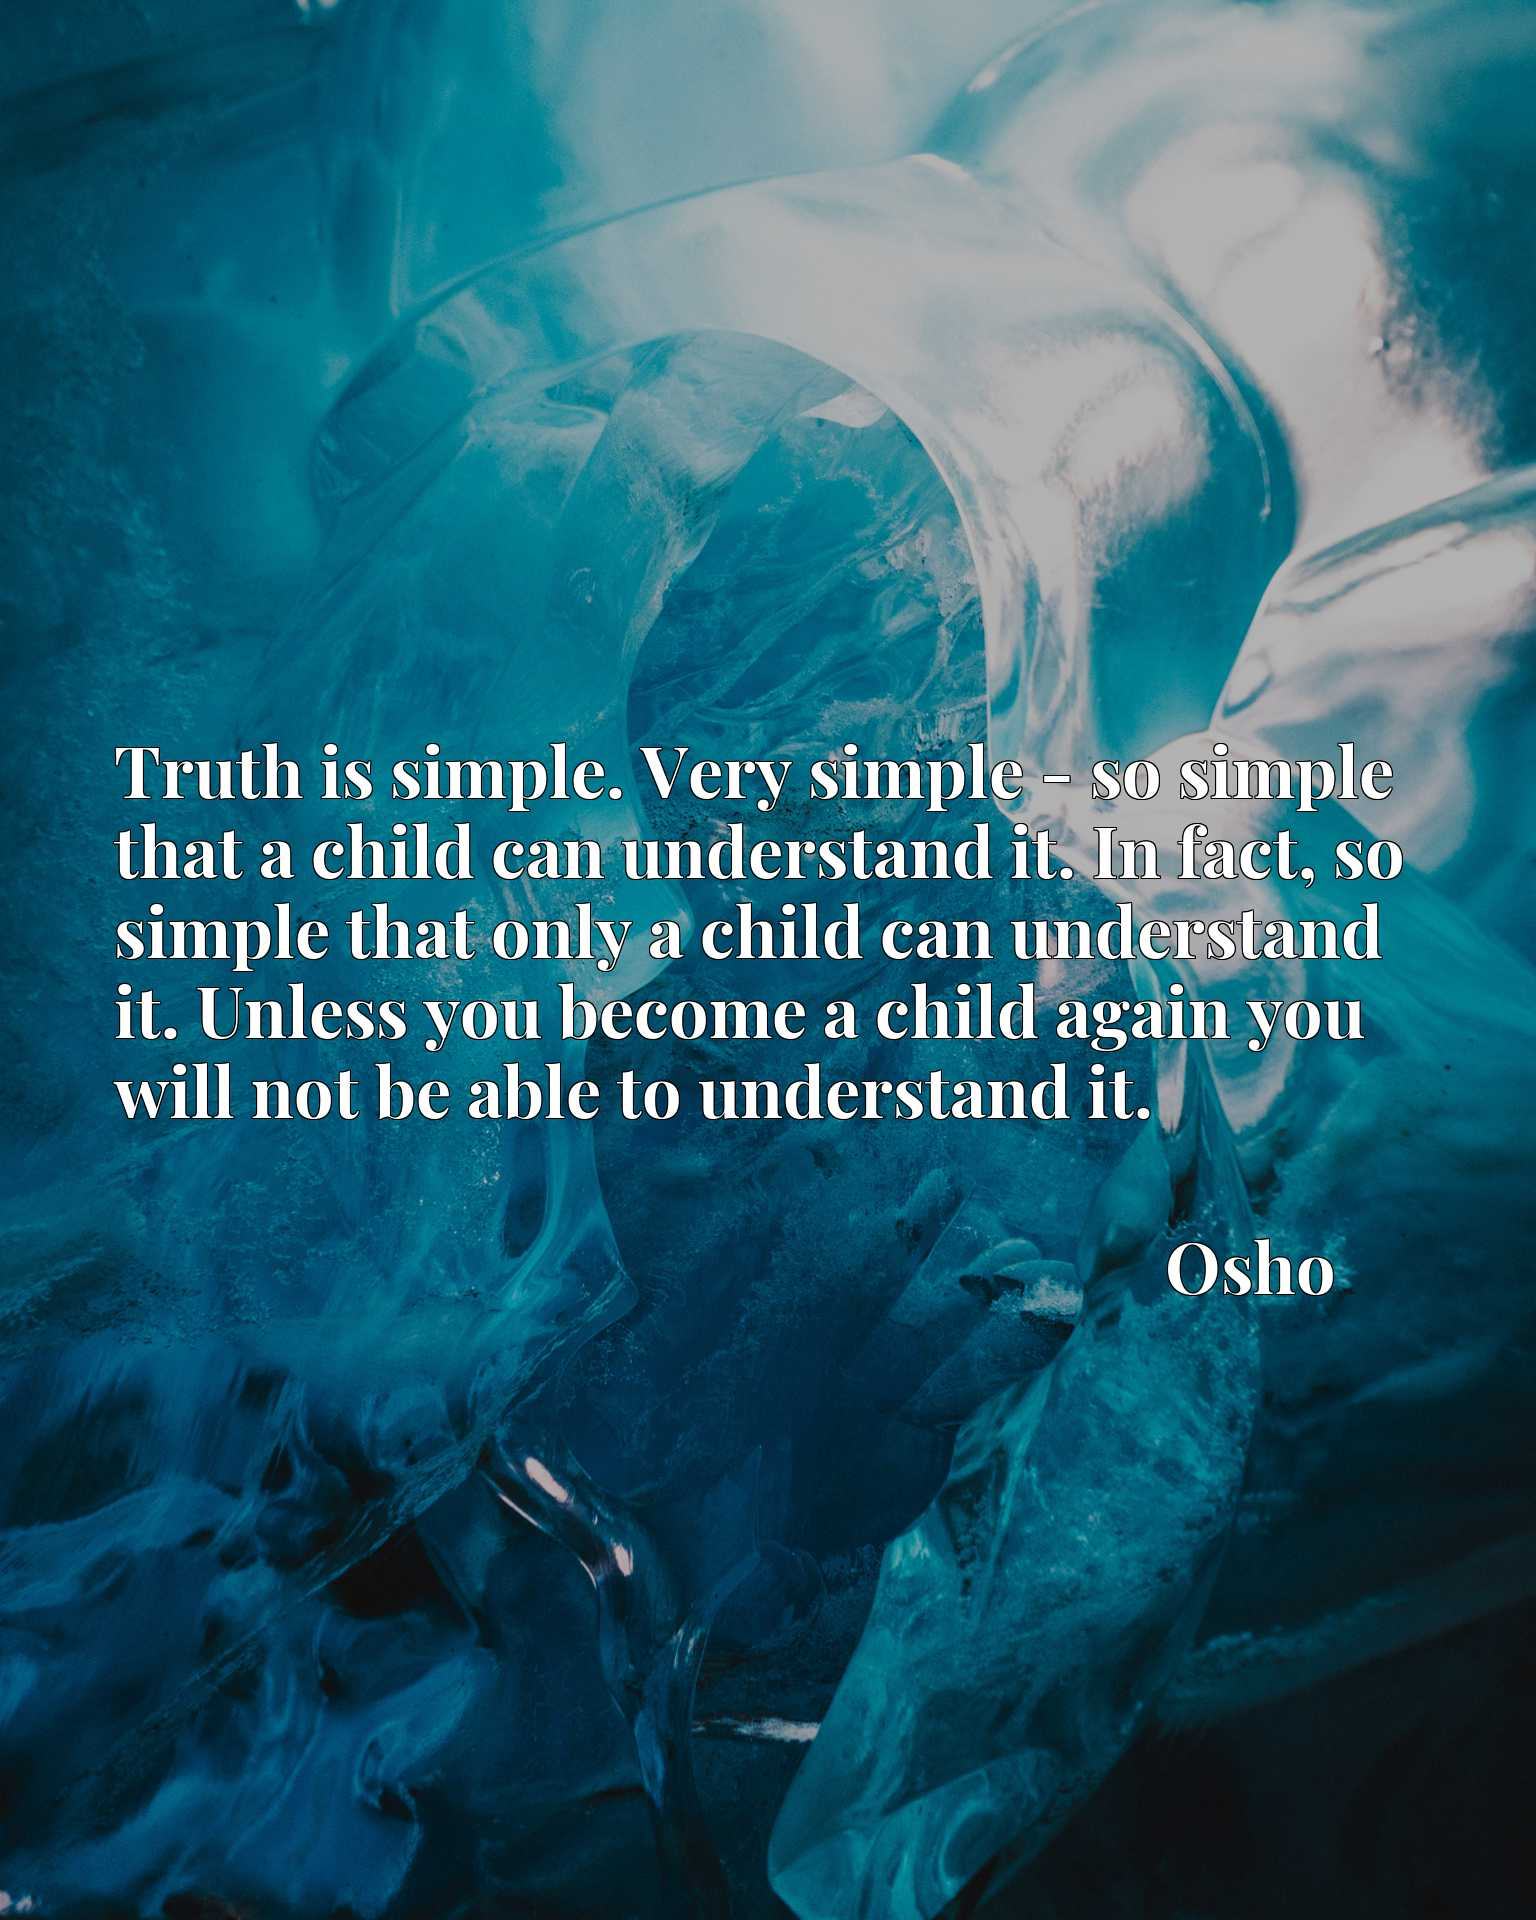 Truth is simple. Very simple - so simple that a child can understand it. In fact, so simple that only a child can understand it. Unless you become a child again you will not be able to understand it.